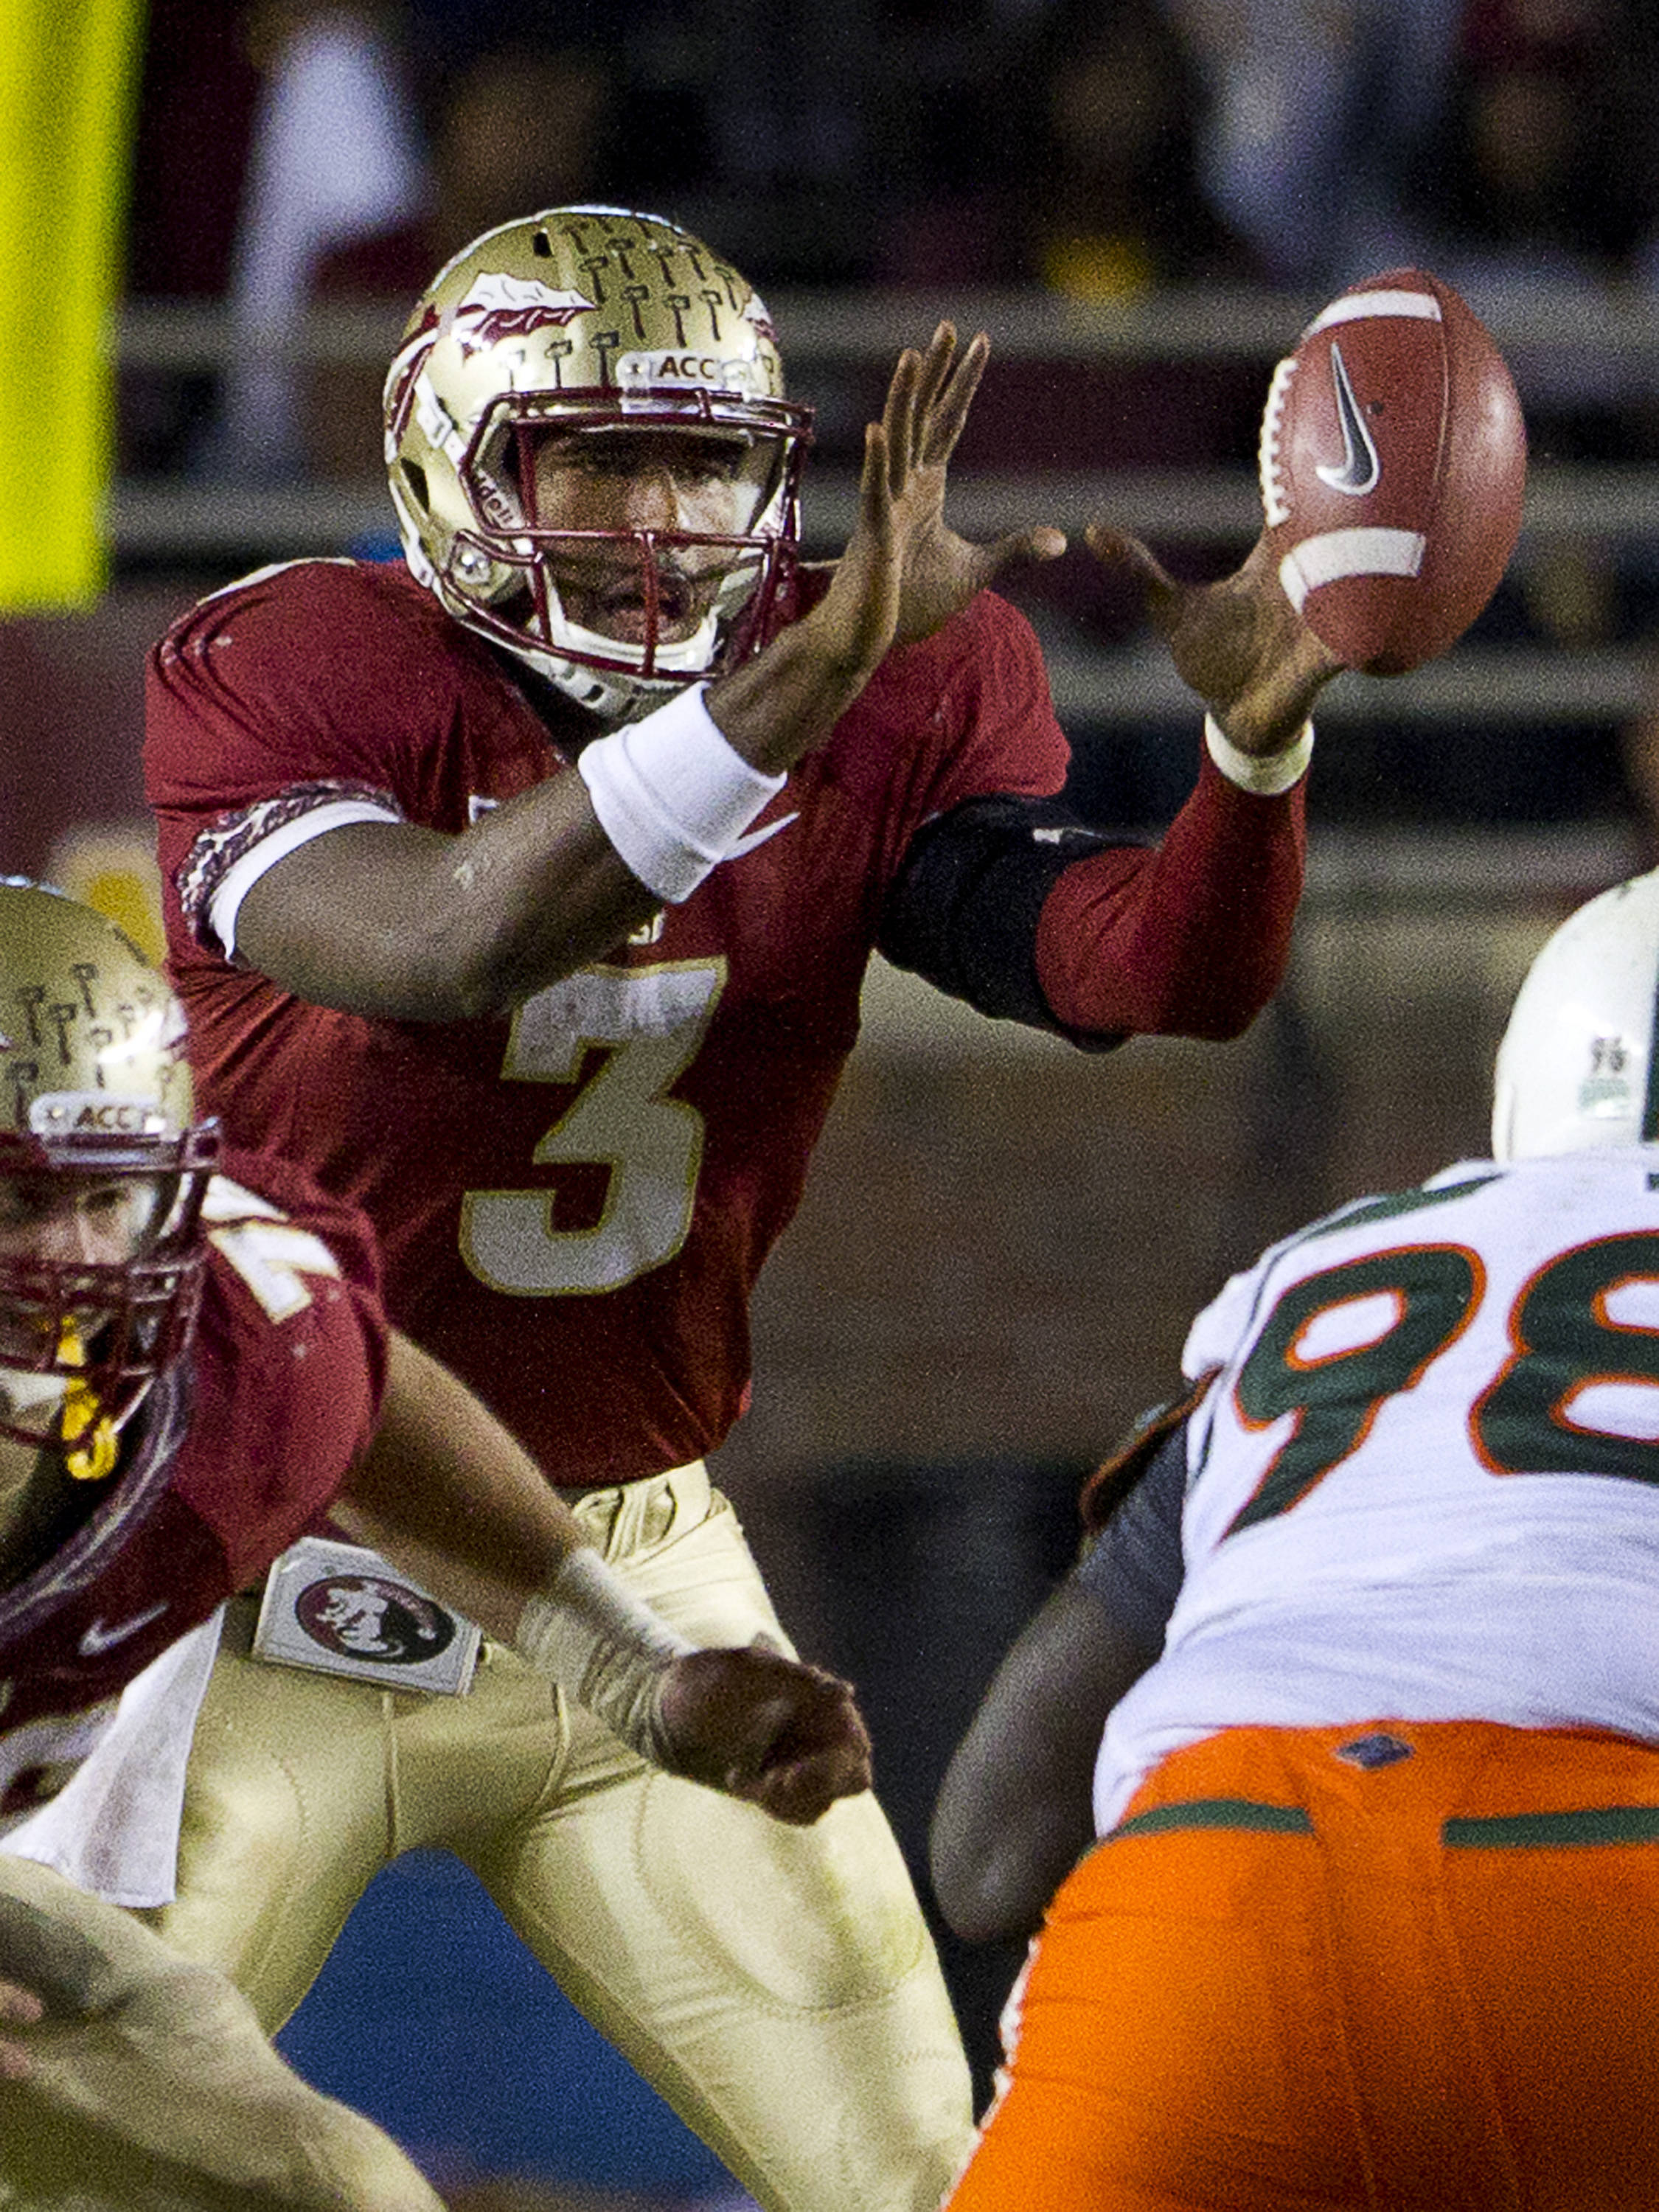 EJ Manuel (3) catches the snap during the football game against Miami on November 12, 2011.